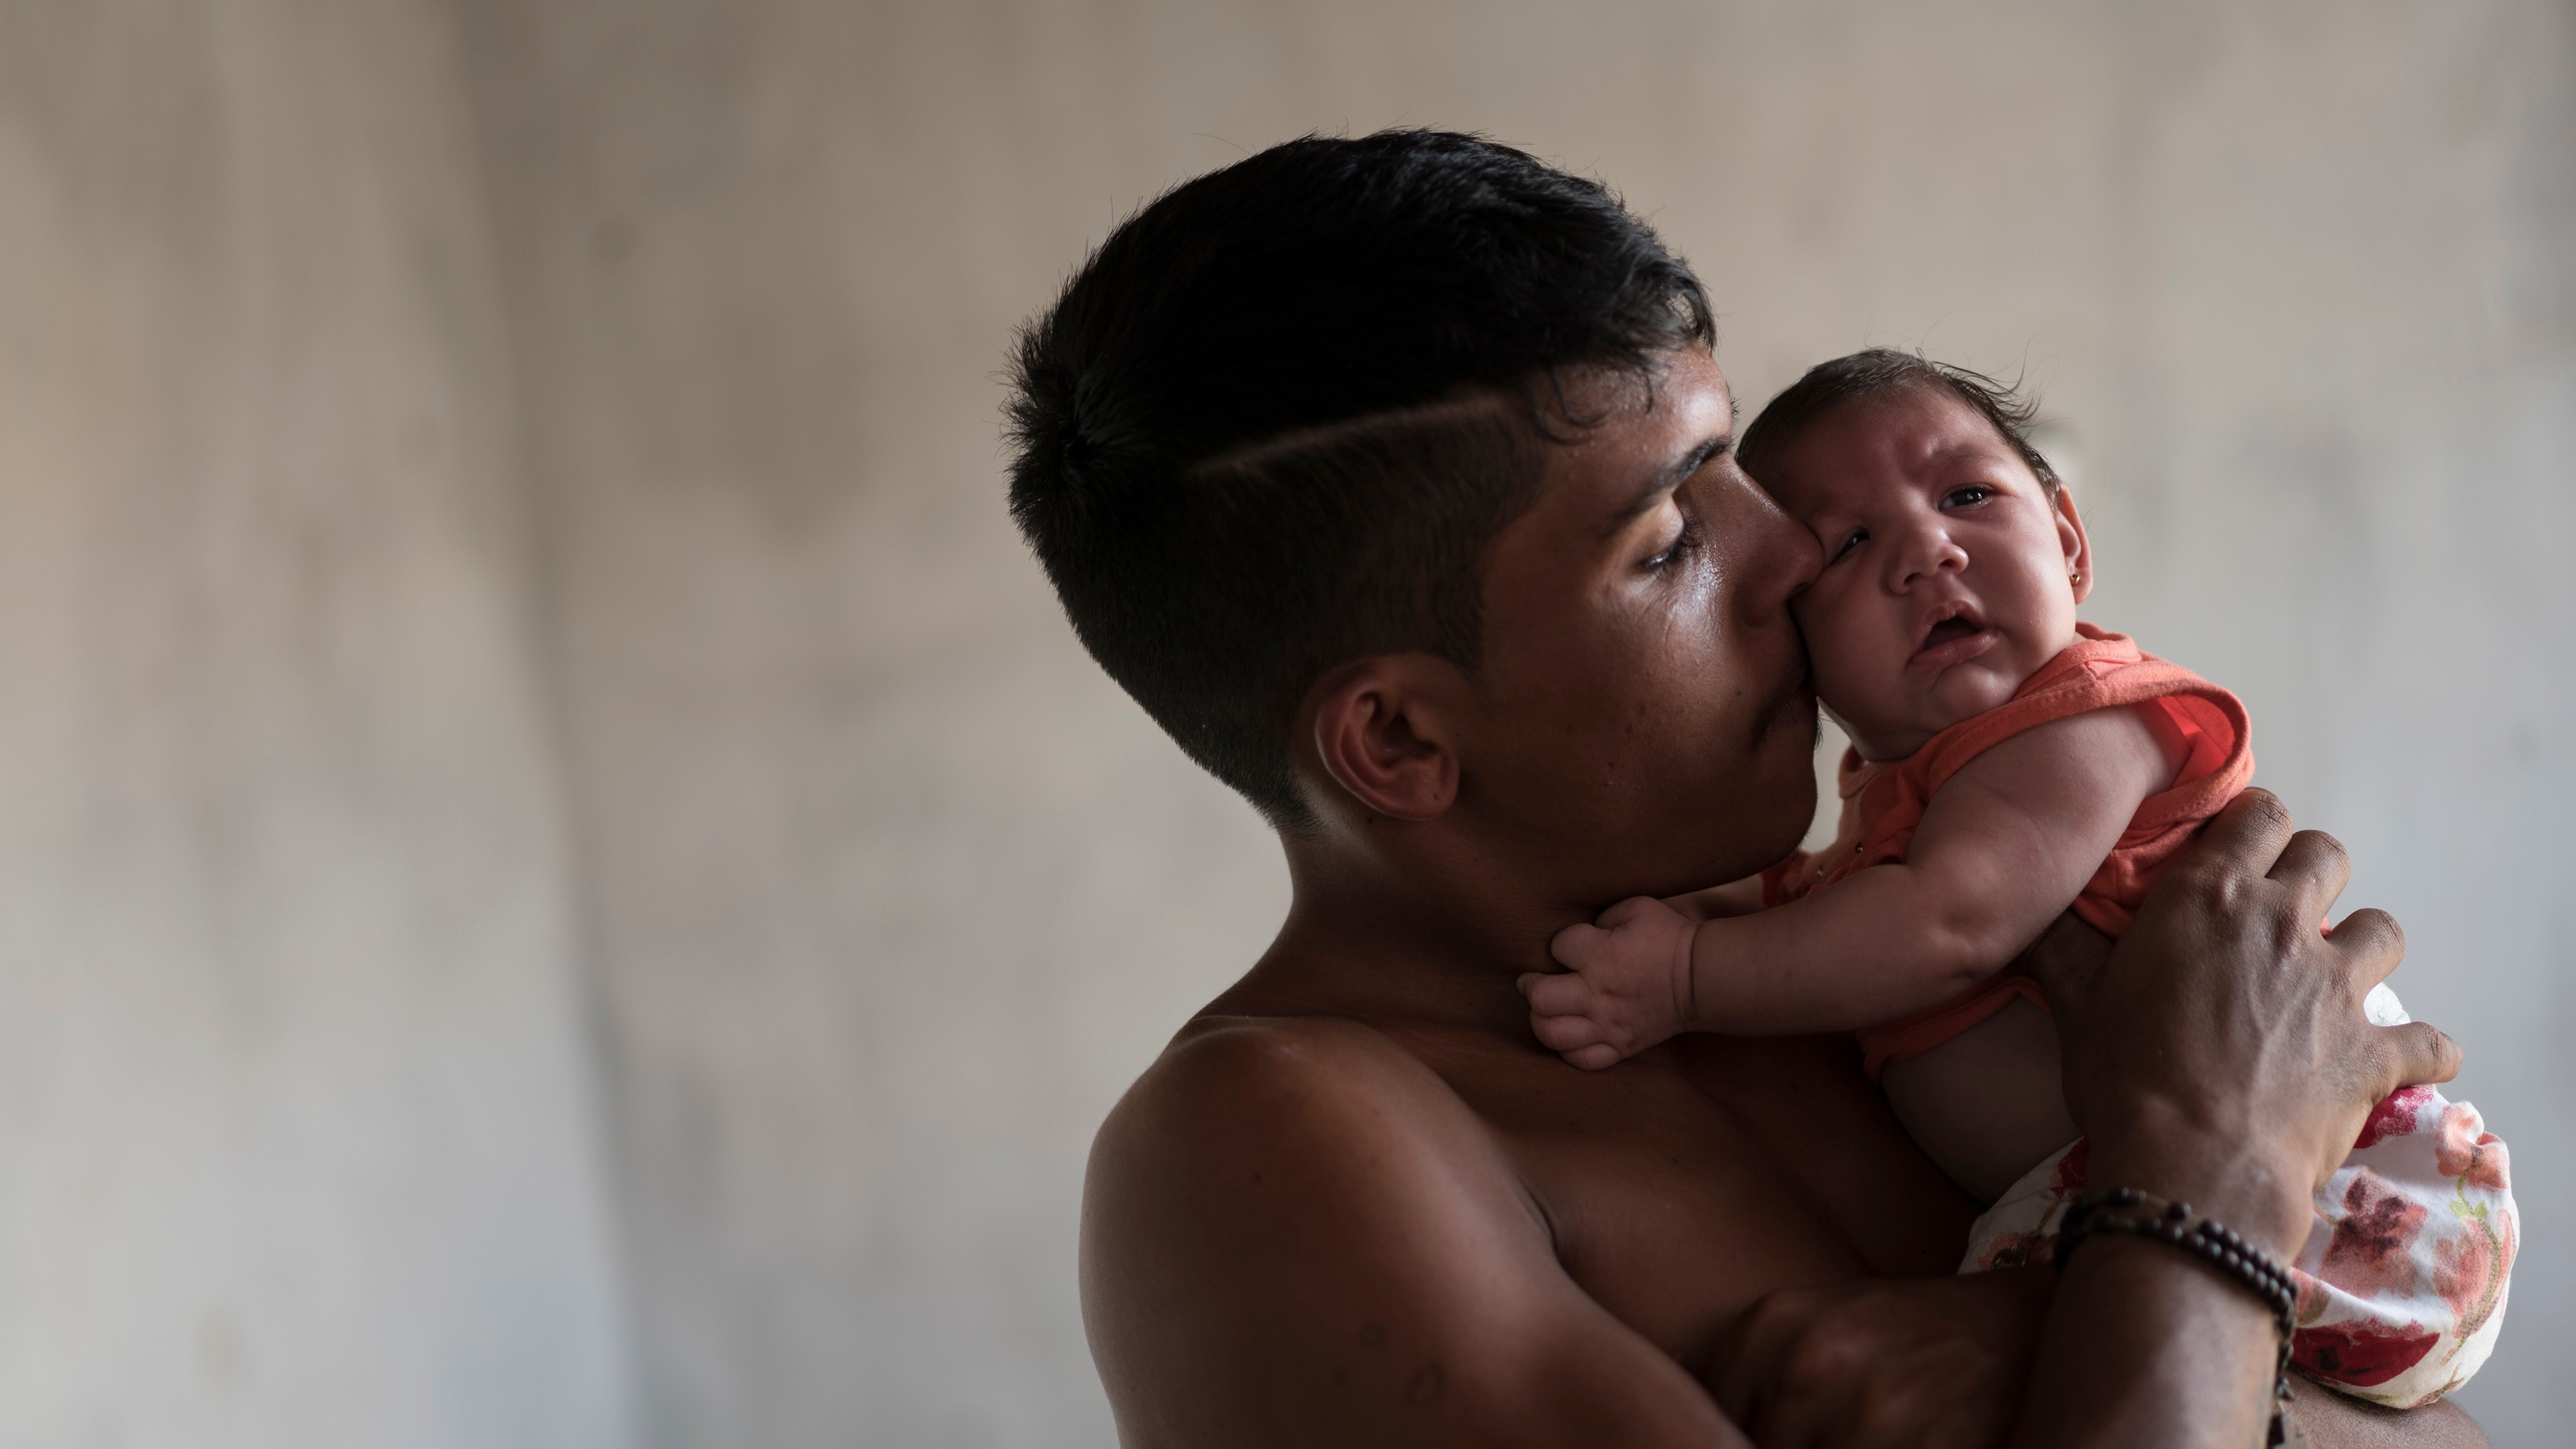 CDC Doctor Says There's No Question Zika Is Linked to Microcephaly